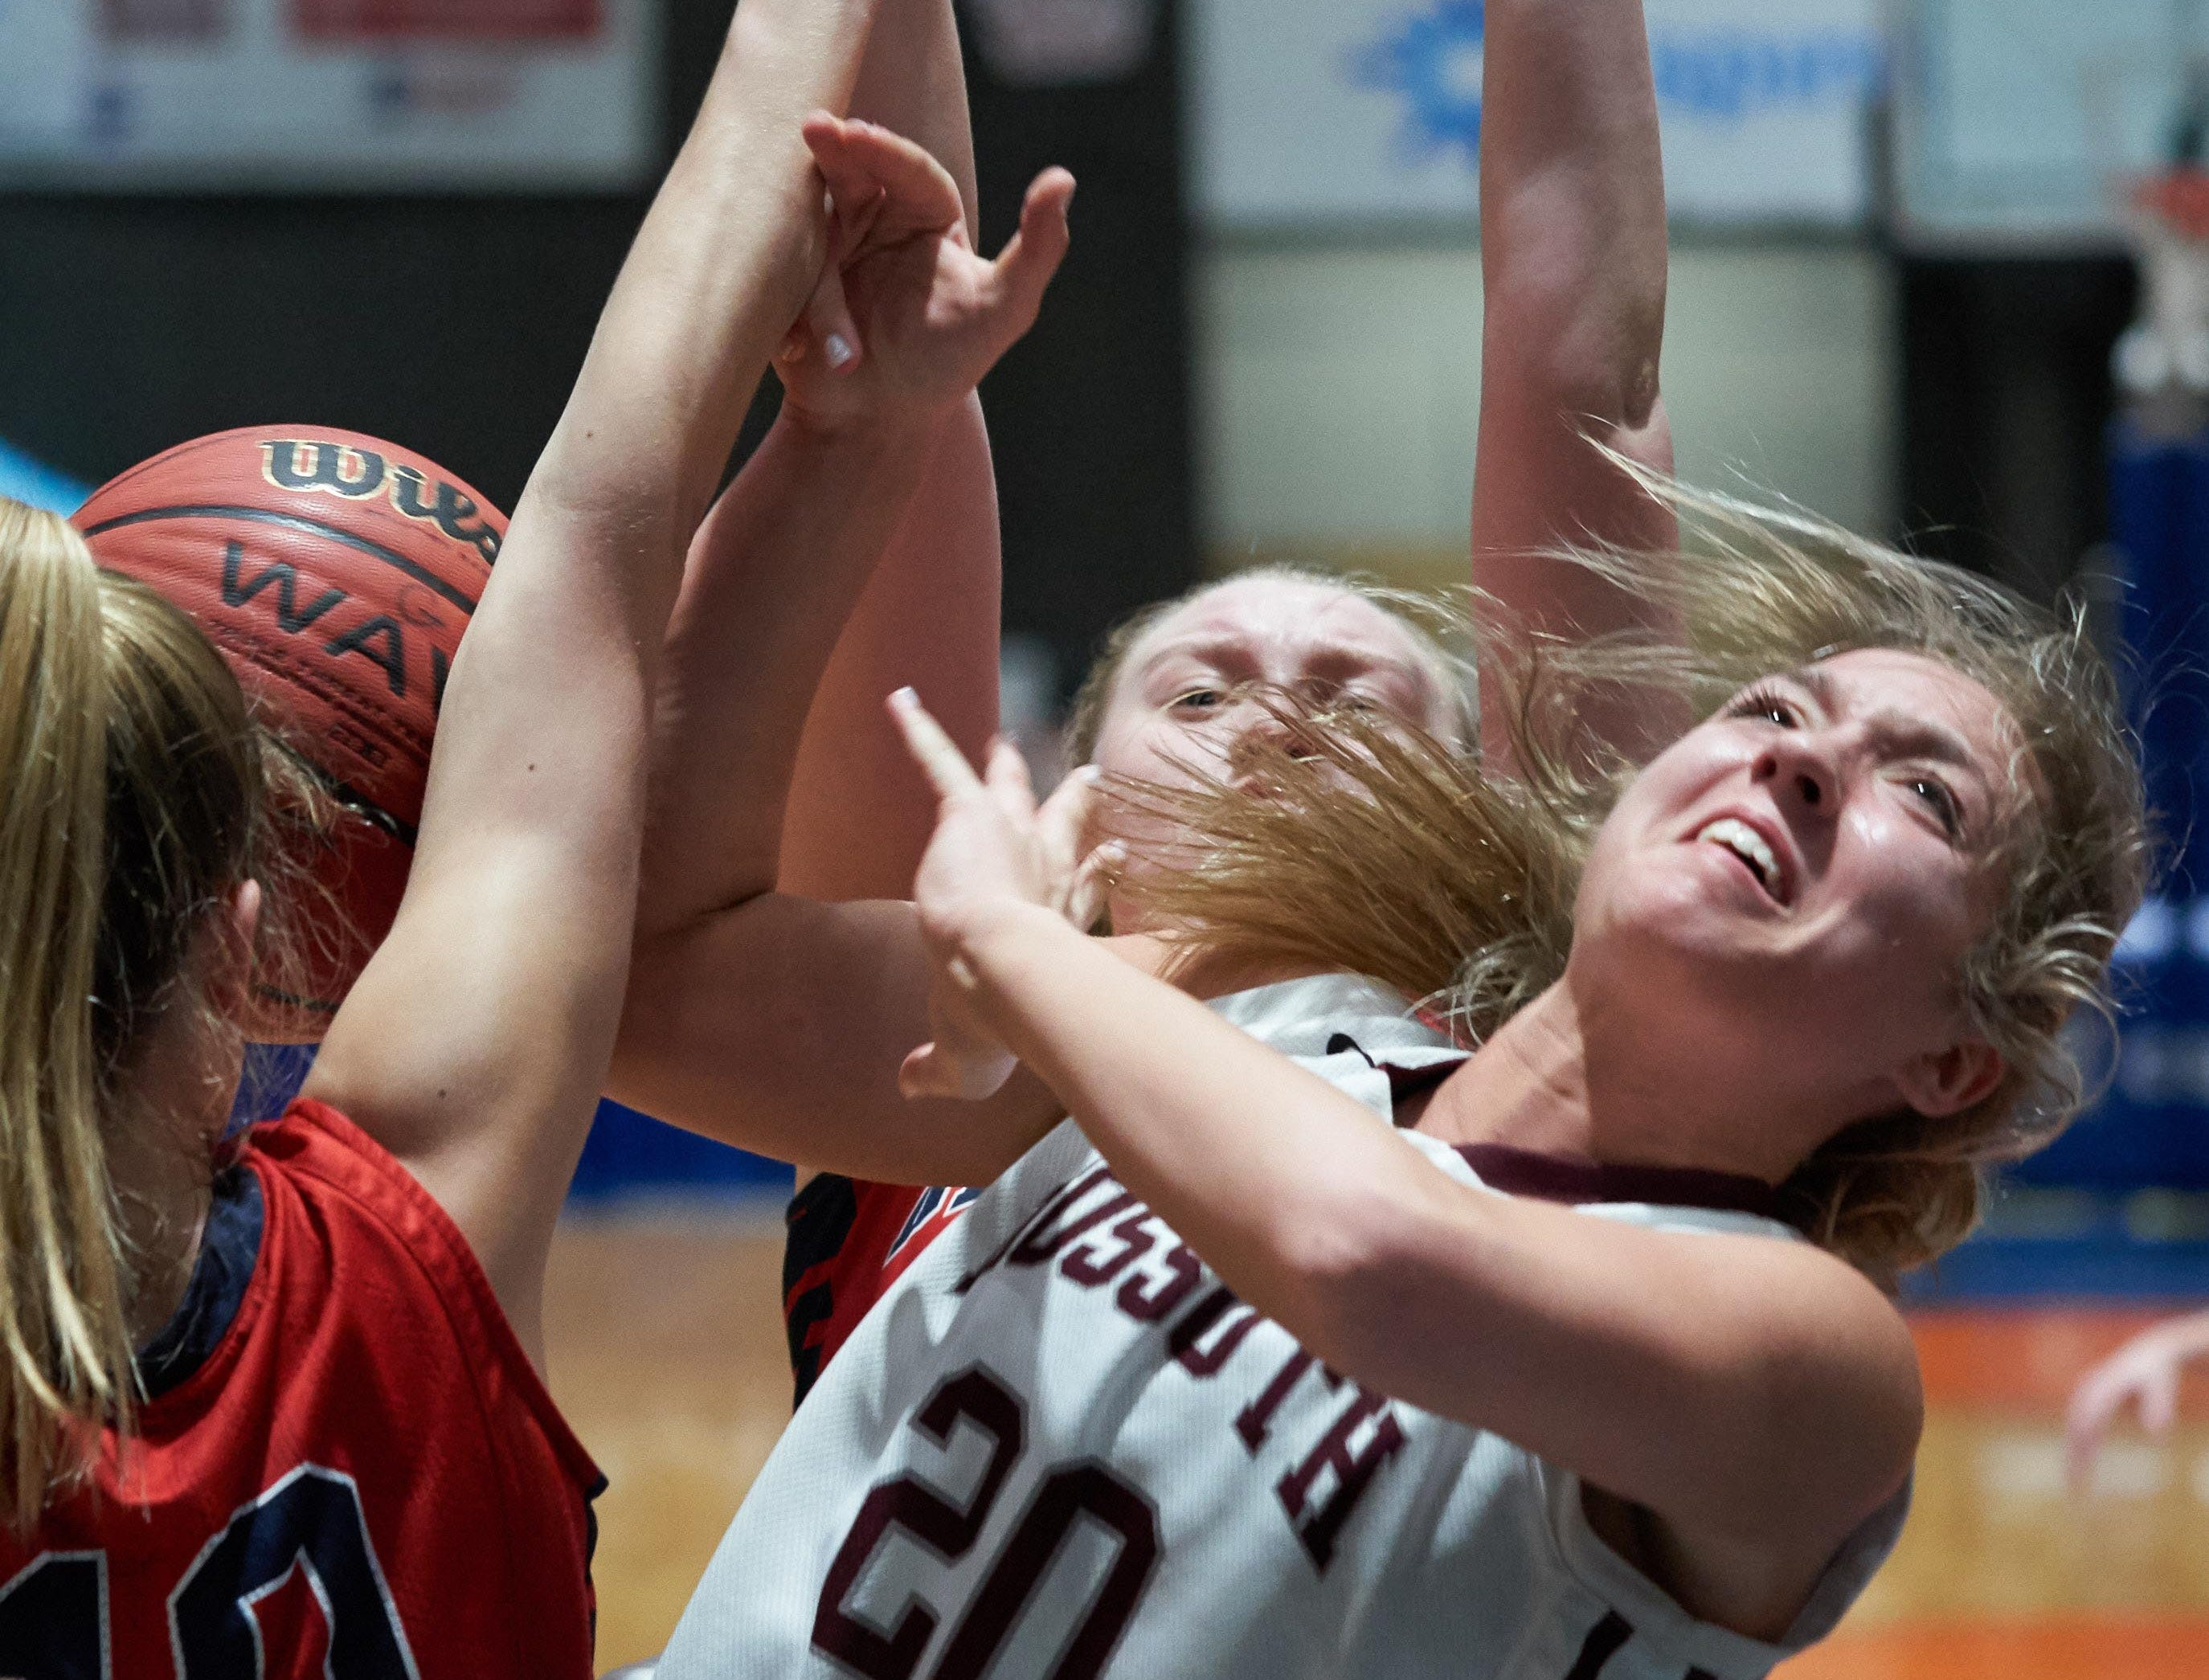 Kossuth's Madison Starling (20) is fouled while shooting against Belmont during the MHSAA 3A Girls Basketball Championship Finals held at the Mississippi Coliseum in Jackson, MS, Saturday March 9th, 2019.(Bob Smith)